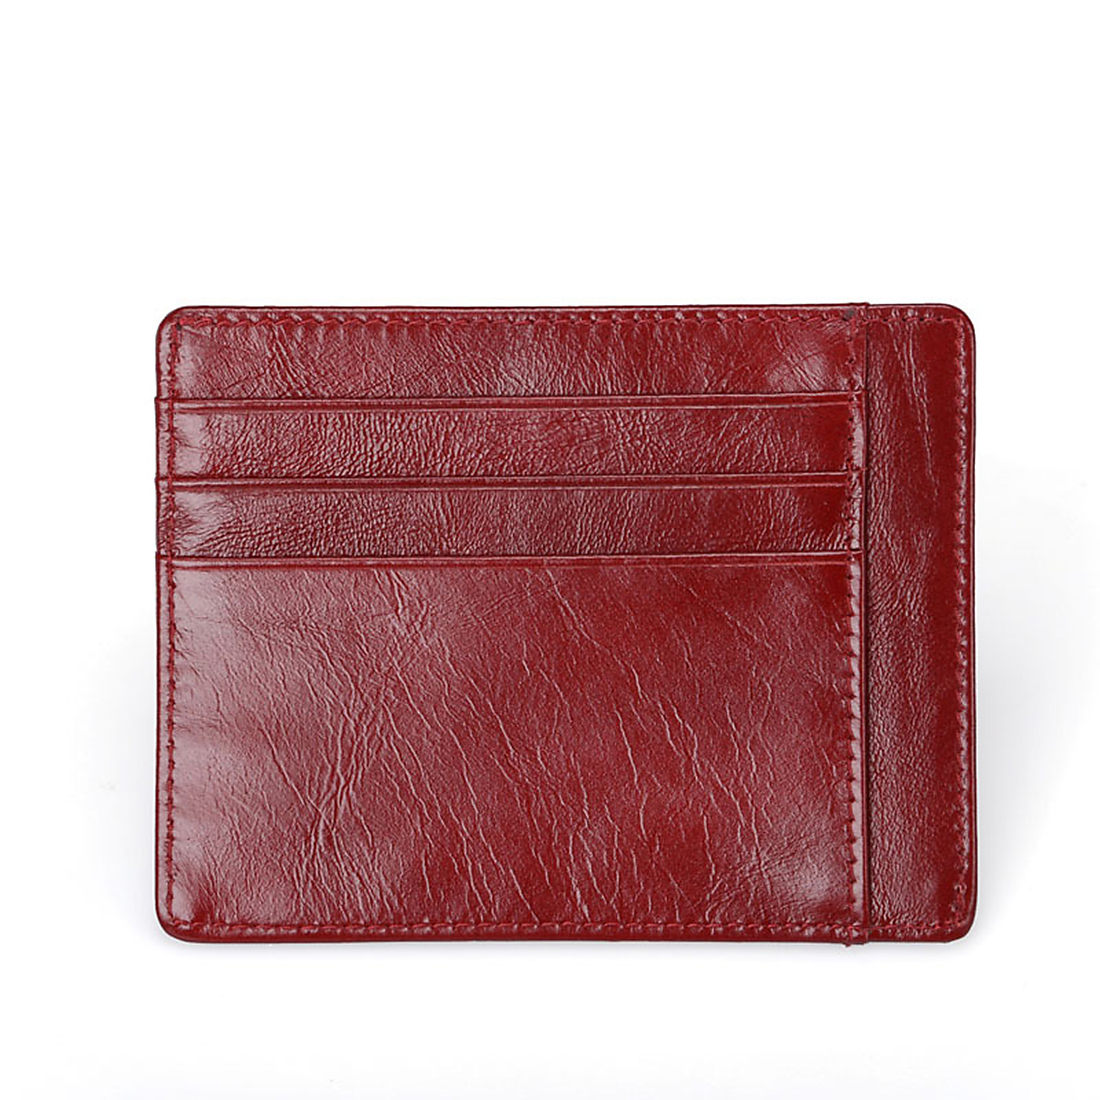 Casual Business Men Card Holder Wallet Cowhide Leather Thin Purse Card Solts Small Card Holders